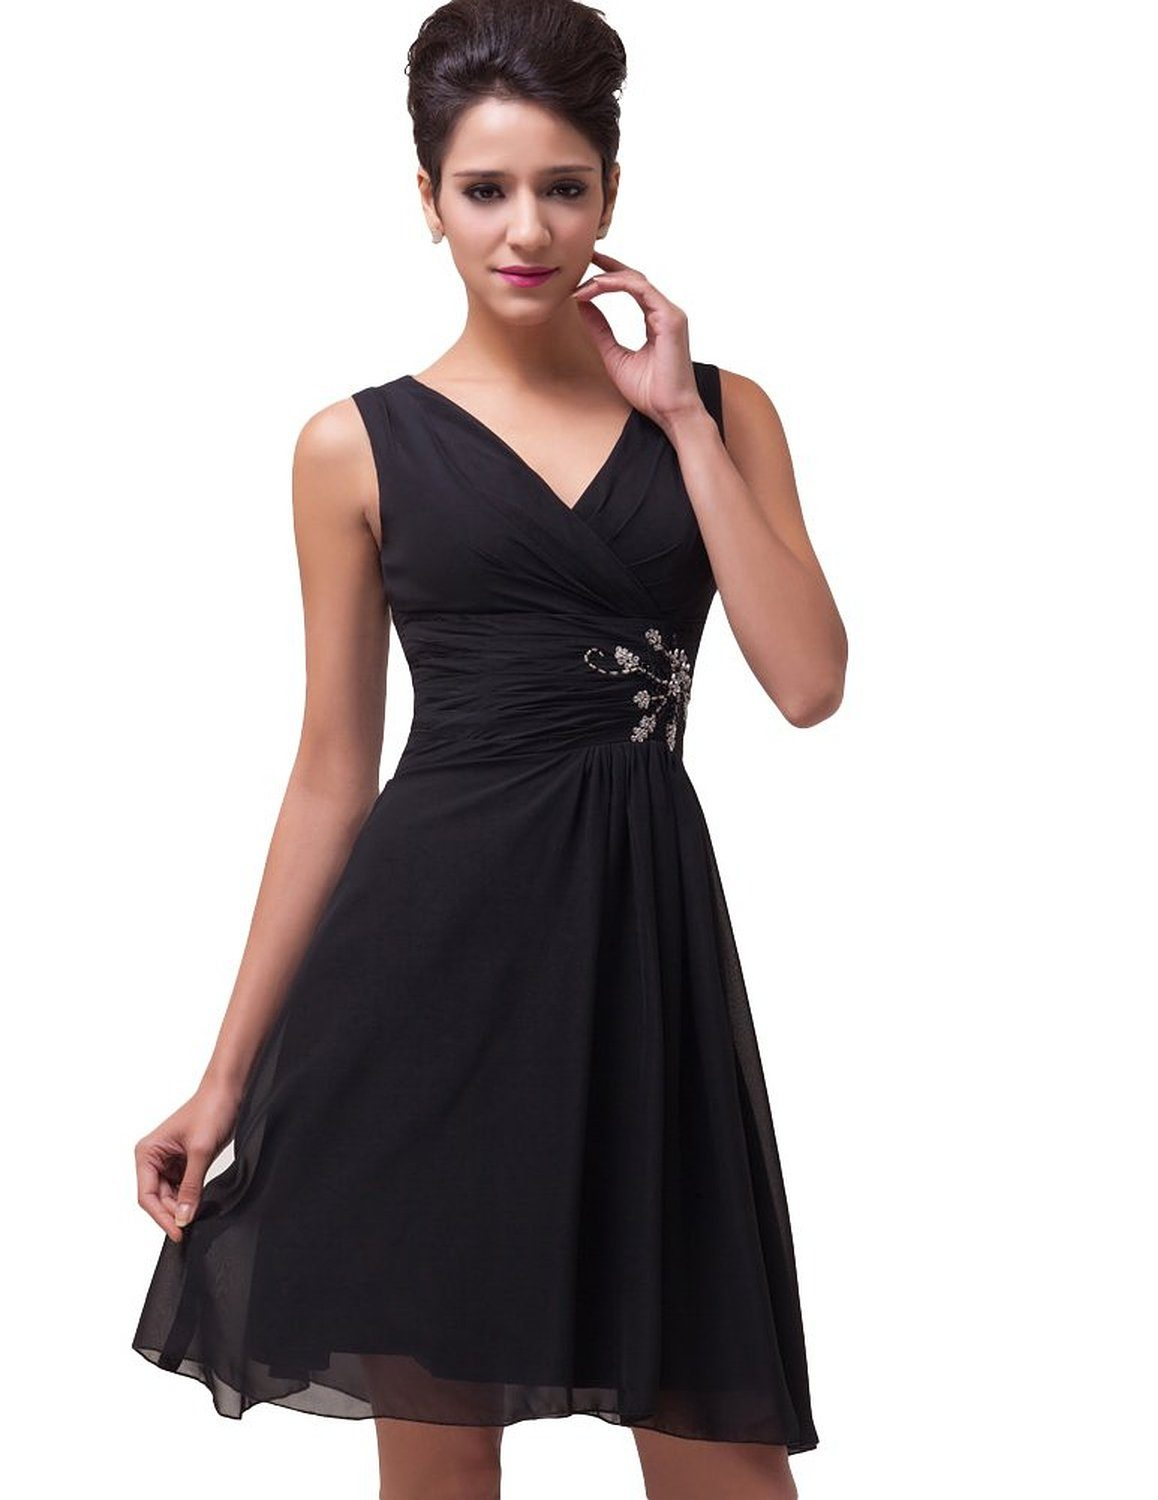 Megan black chiffon cocktail dress-front detail